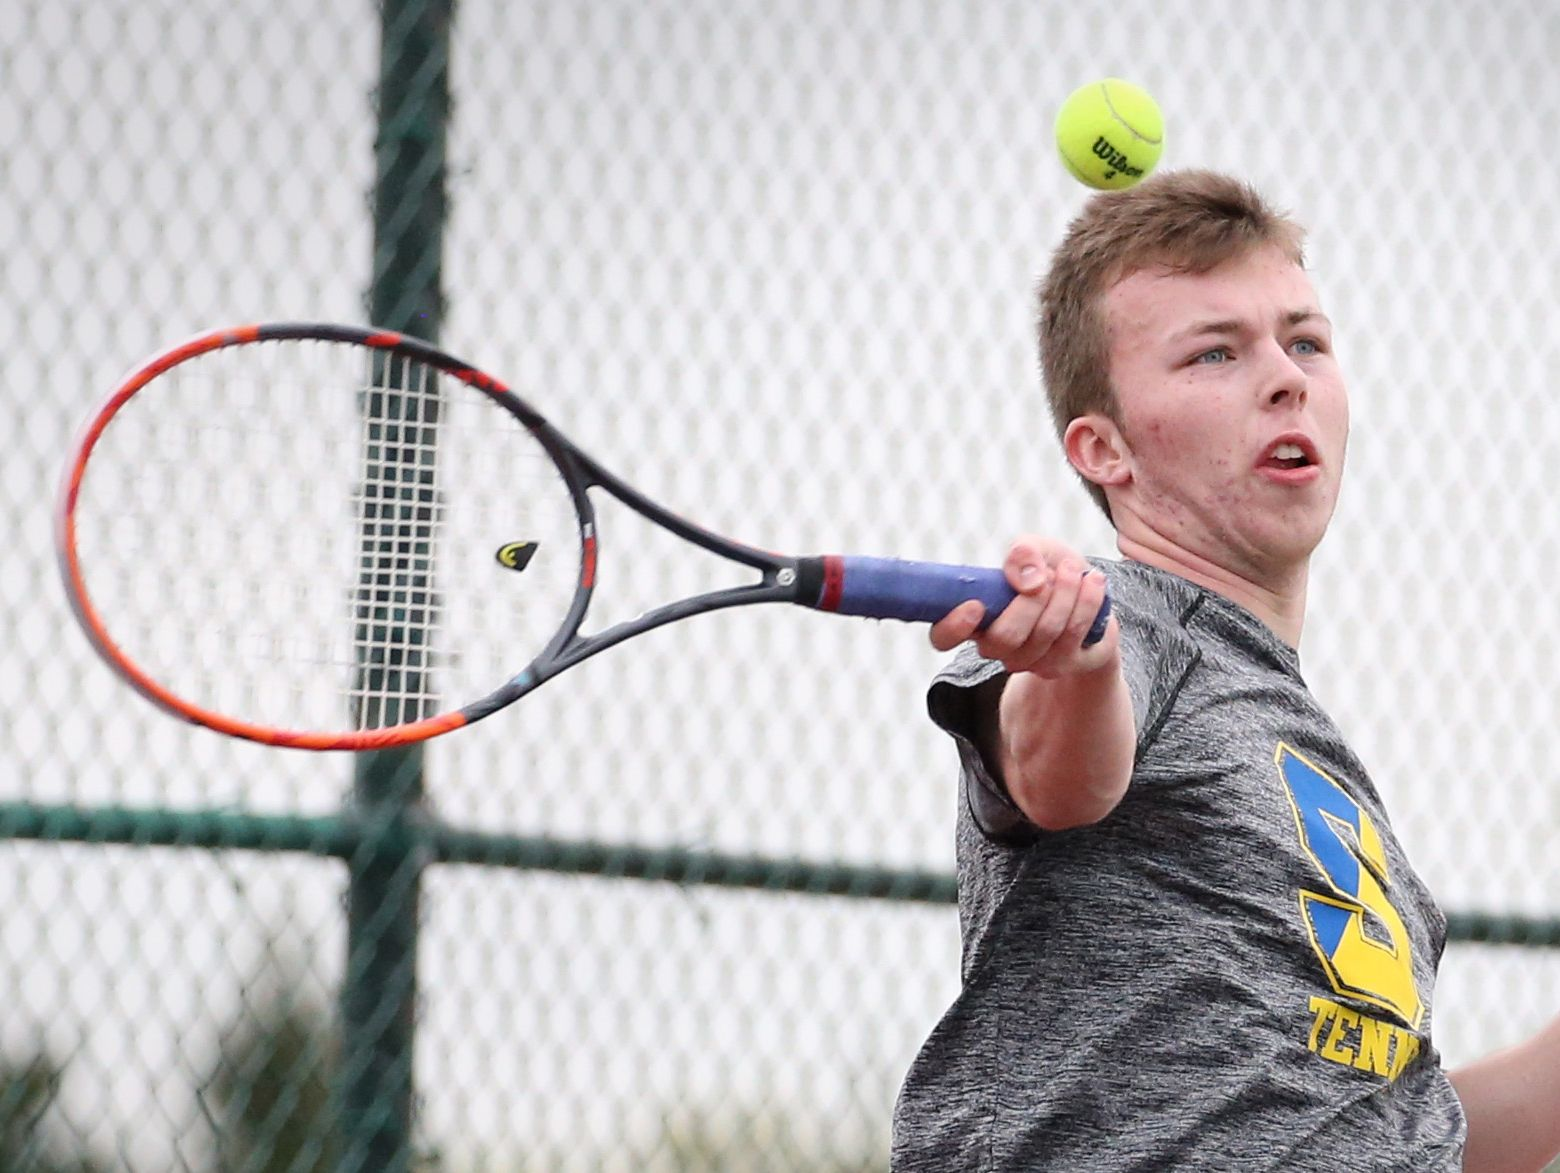 Webster Schroeder's Matt Gamble rips a forehand during his opening match against Geneva's Ryan Fishback during the Section V boys tennis state qualifier Saturday, May 21, 2016 at Pittsford Mendon High School. Gamble won the match, and went on to win the singles finals.